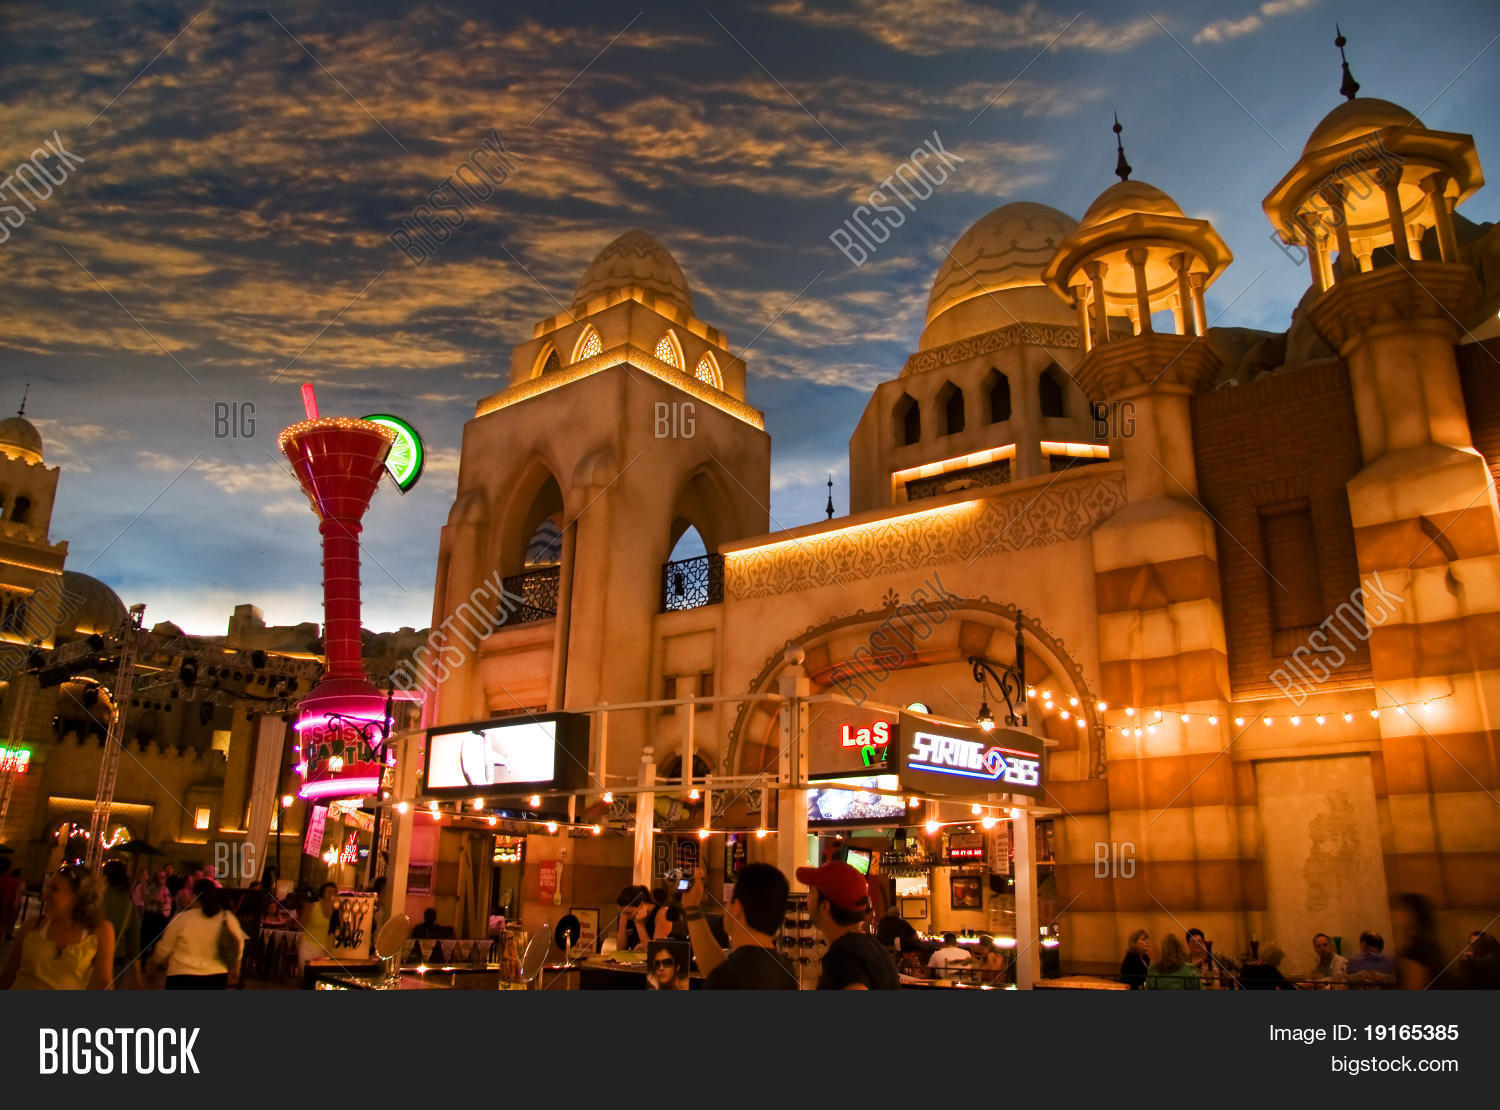 LAS VEGAS - MAY 2: Image & Photo (Free Trial) | Bigstock